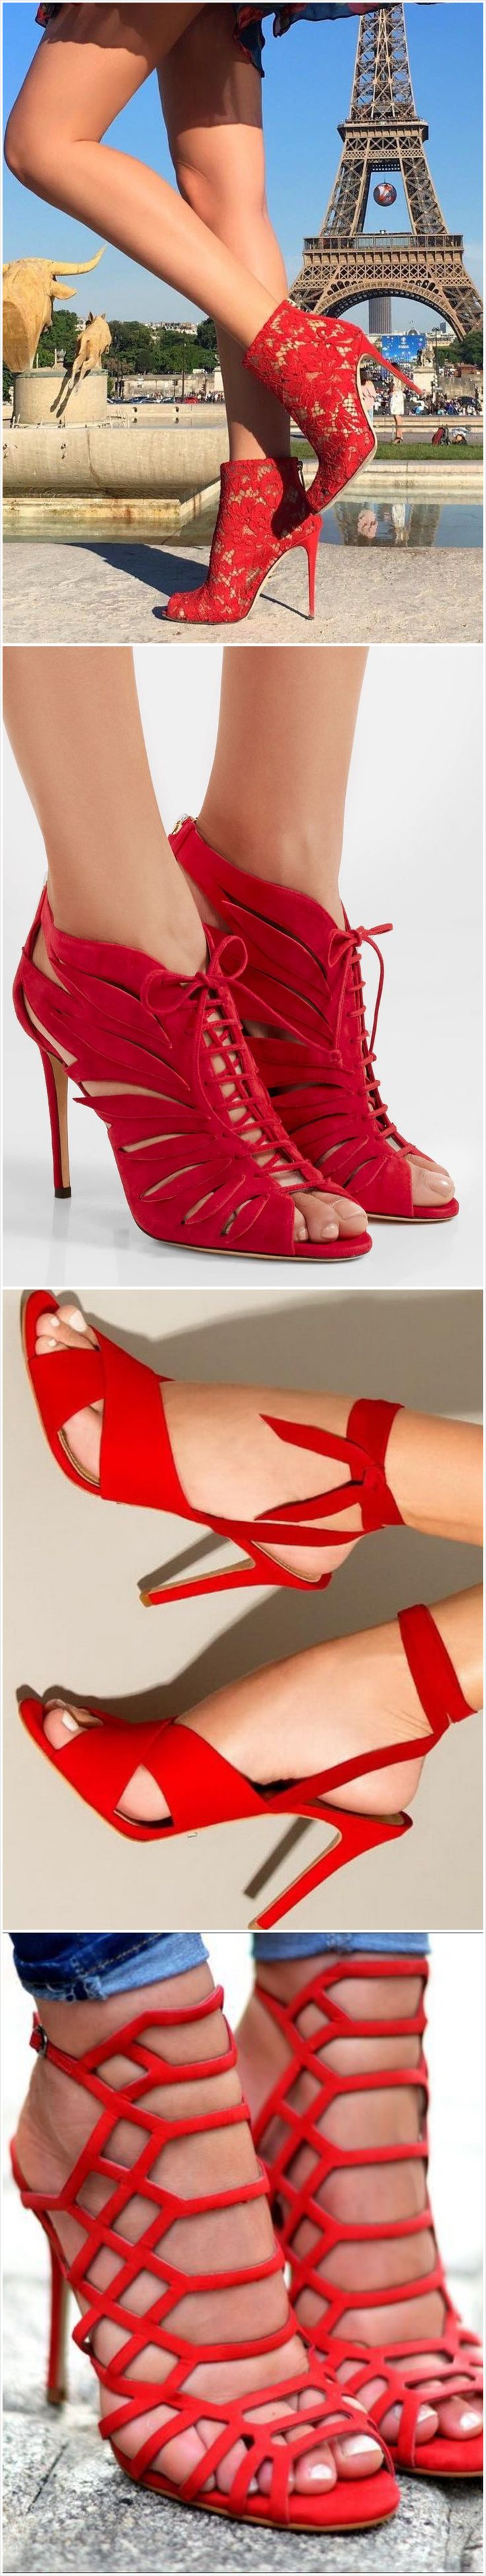 Vivid red designer heels - especially love the last pair!